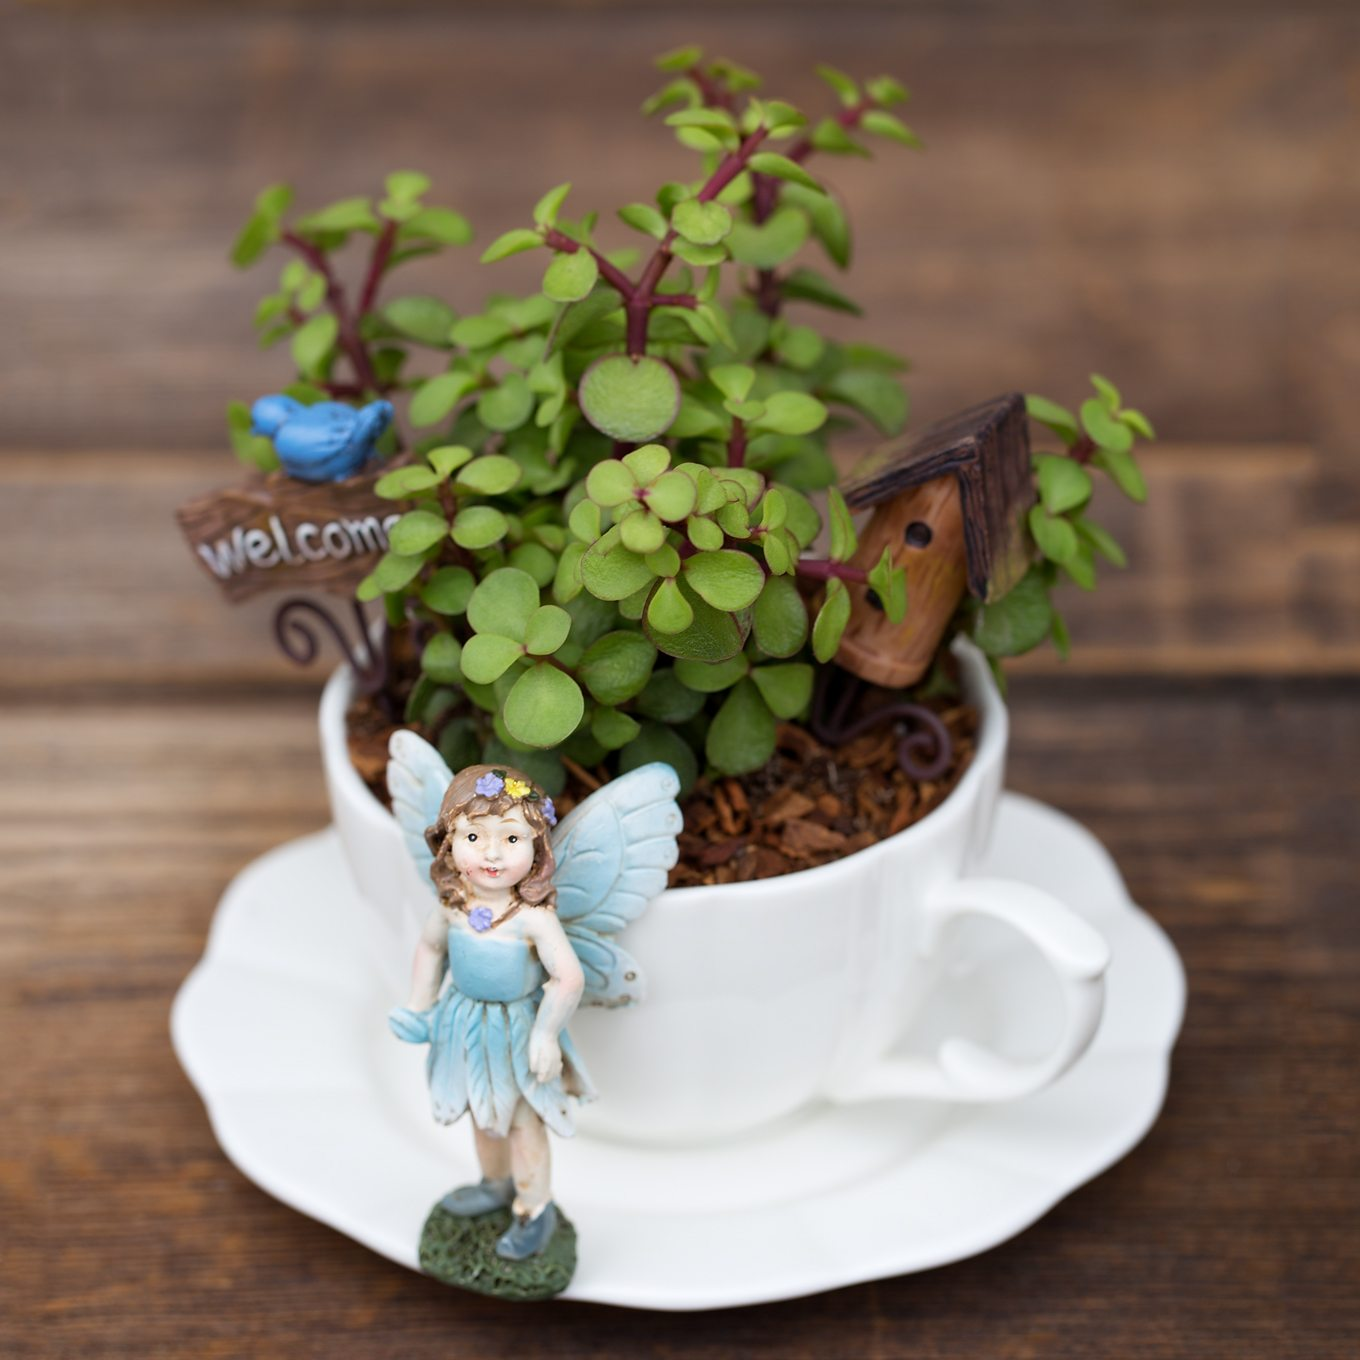 How to Make a Teacup Fairy Garden